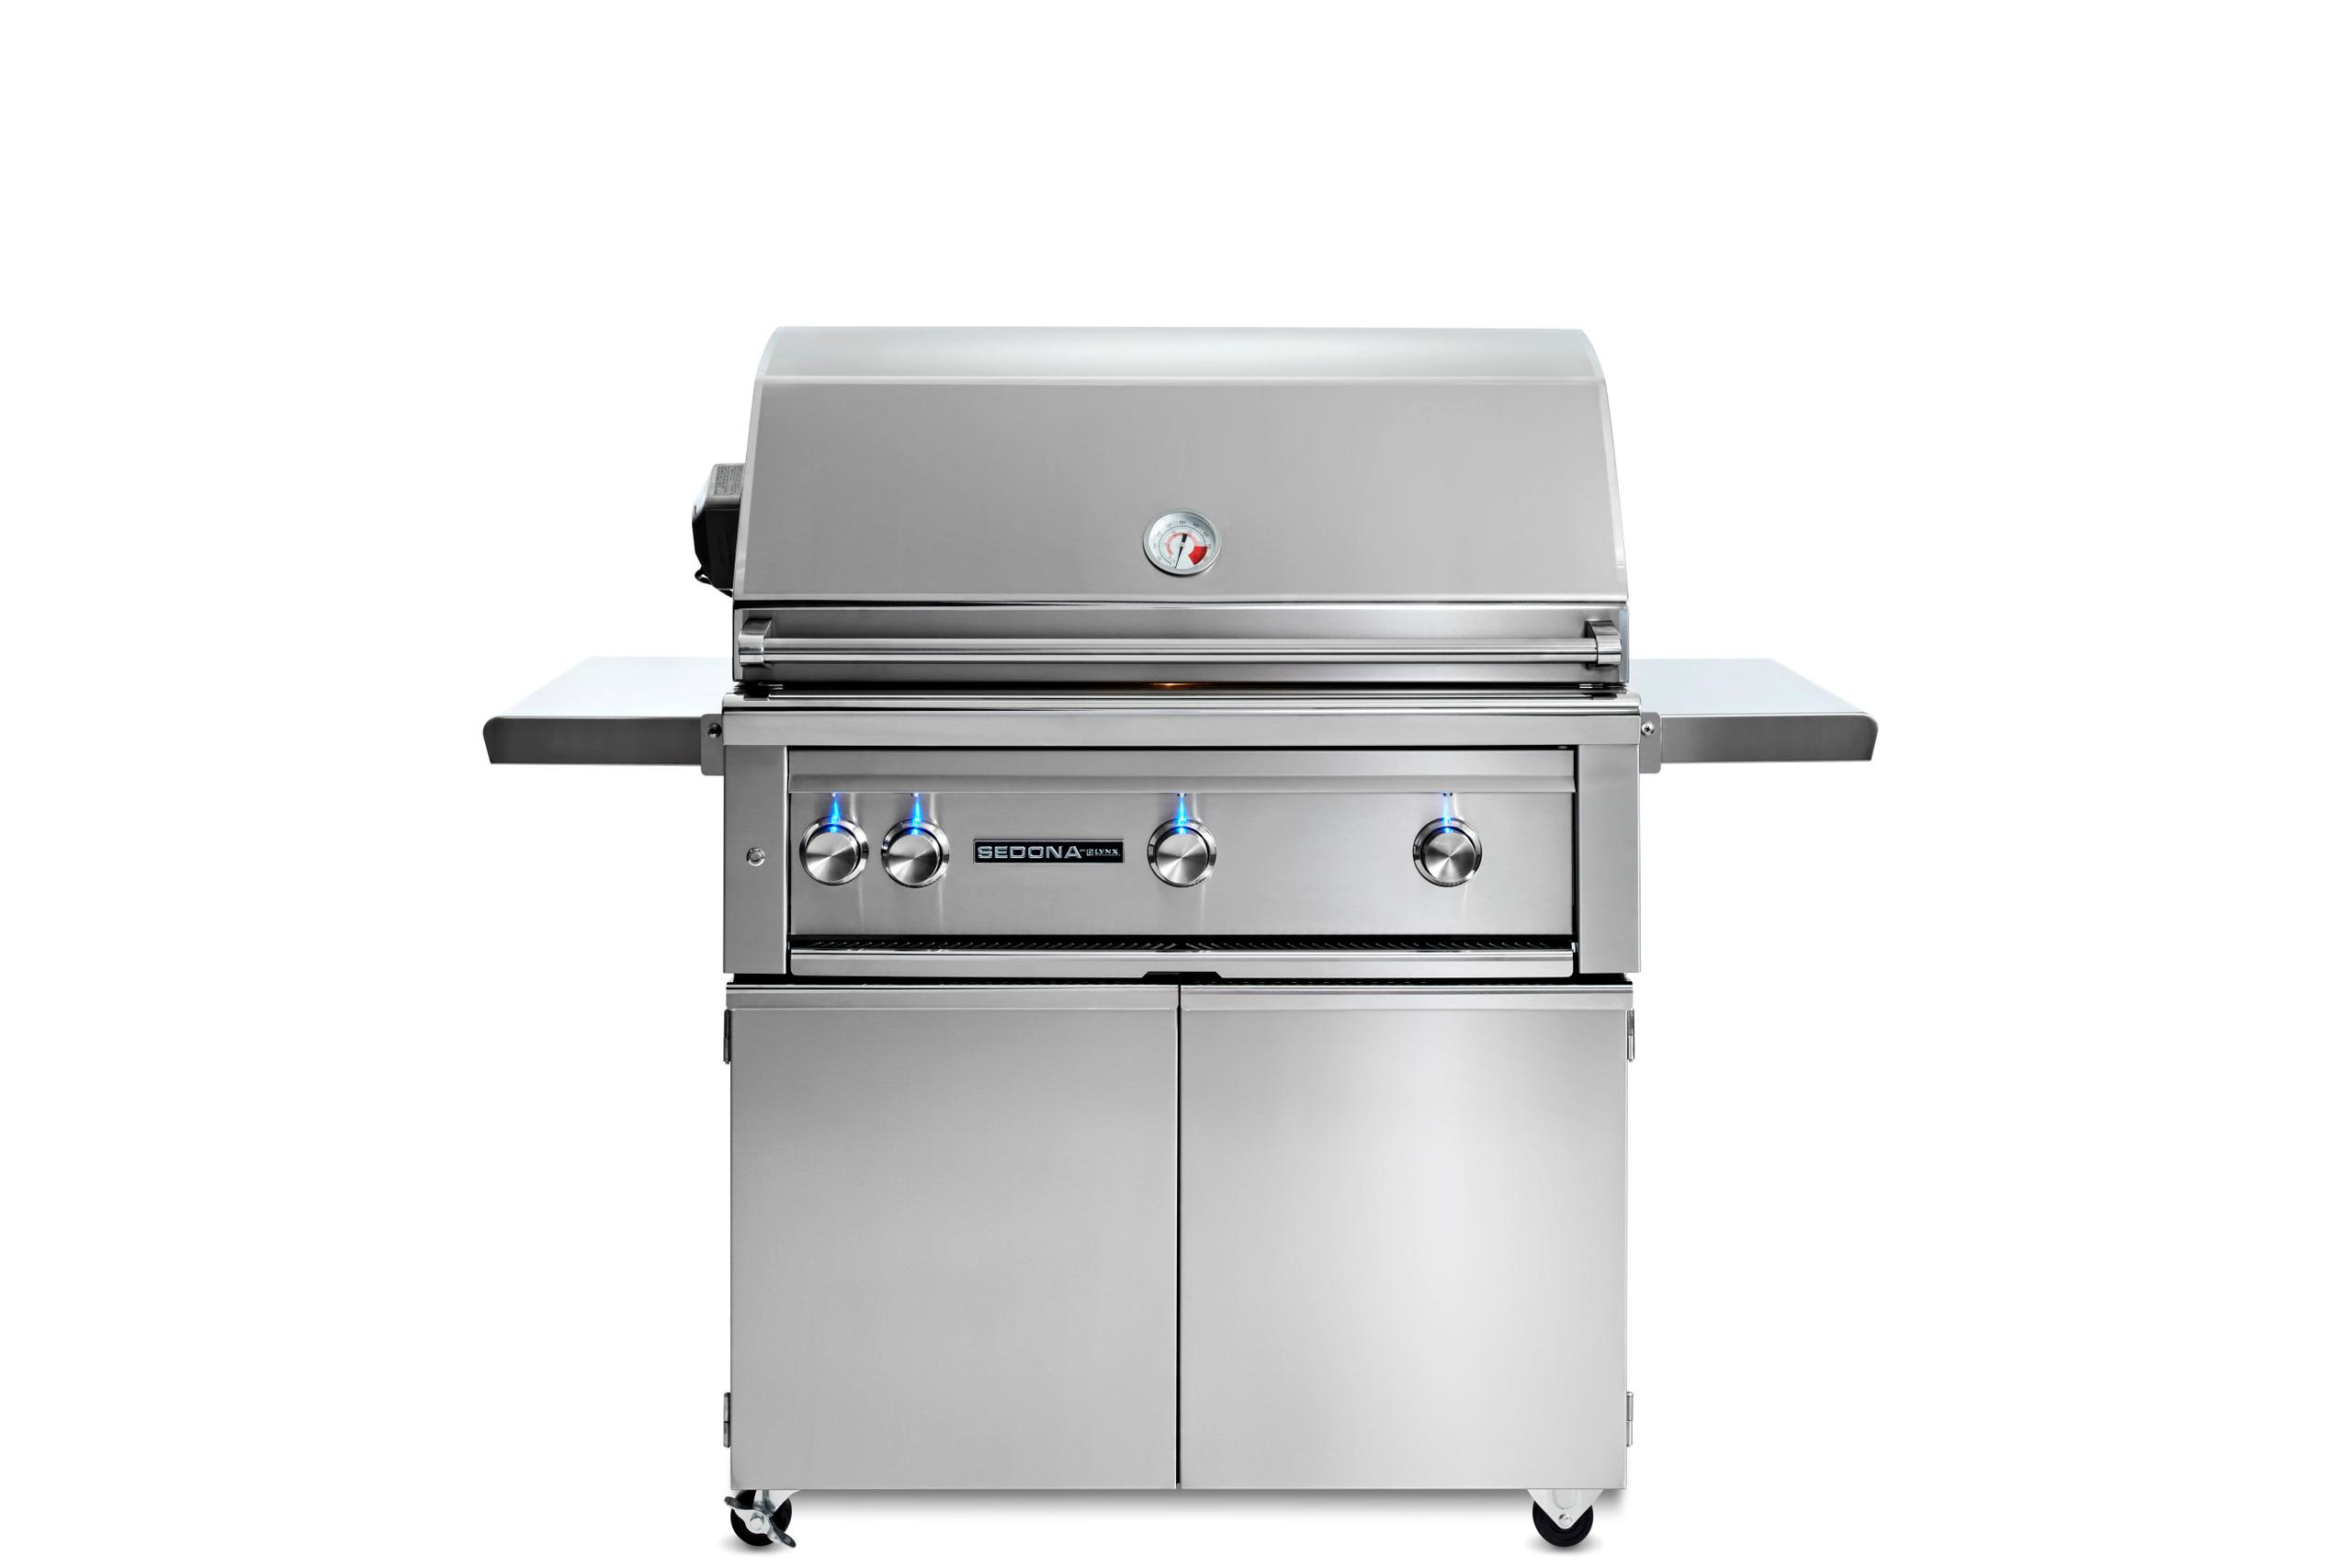 """Lynx36"""" Sedona By Lynx Freestanding Grill With 3 Stainless Steel Burners And Rotisserie, Ng"""